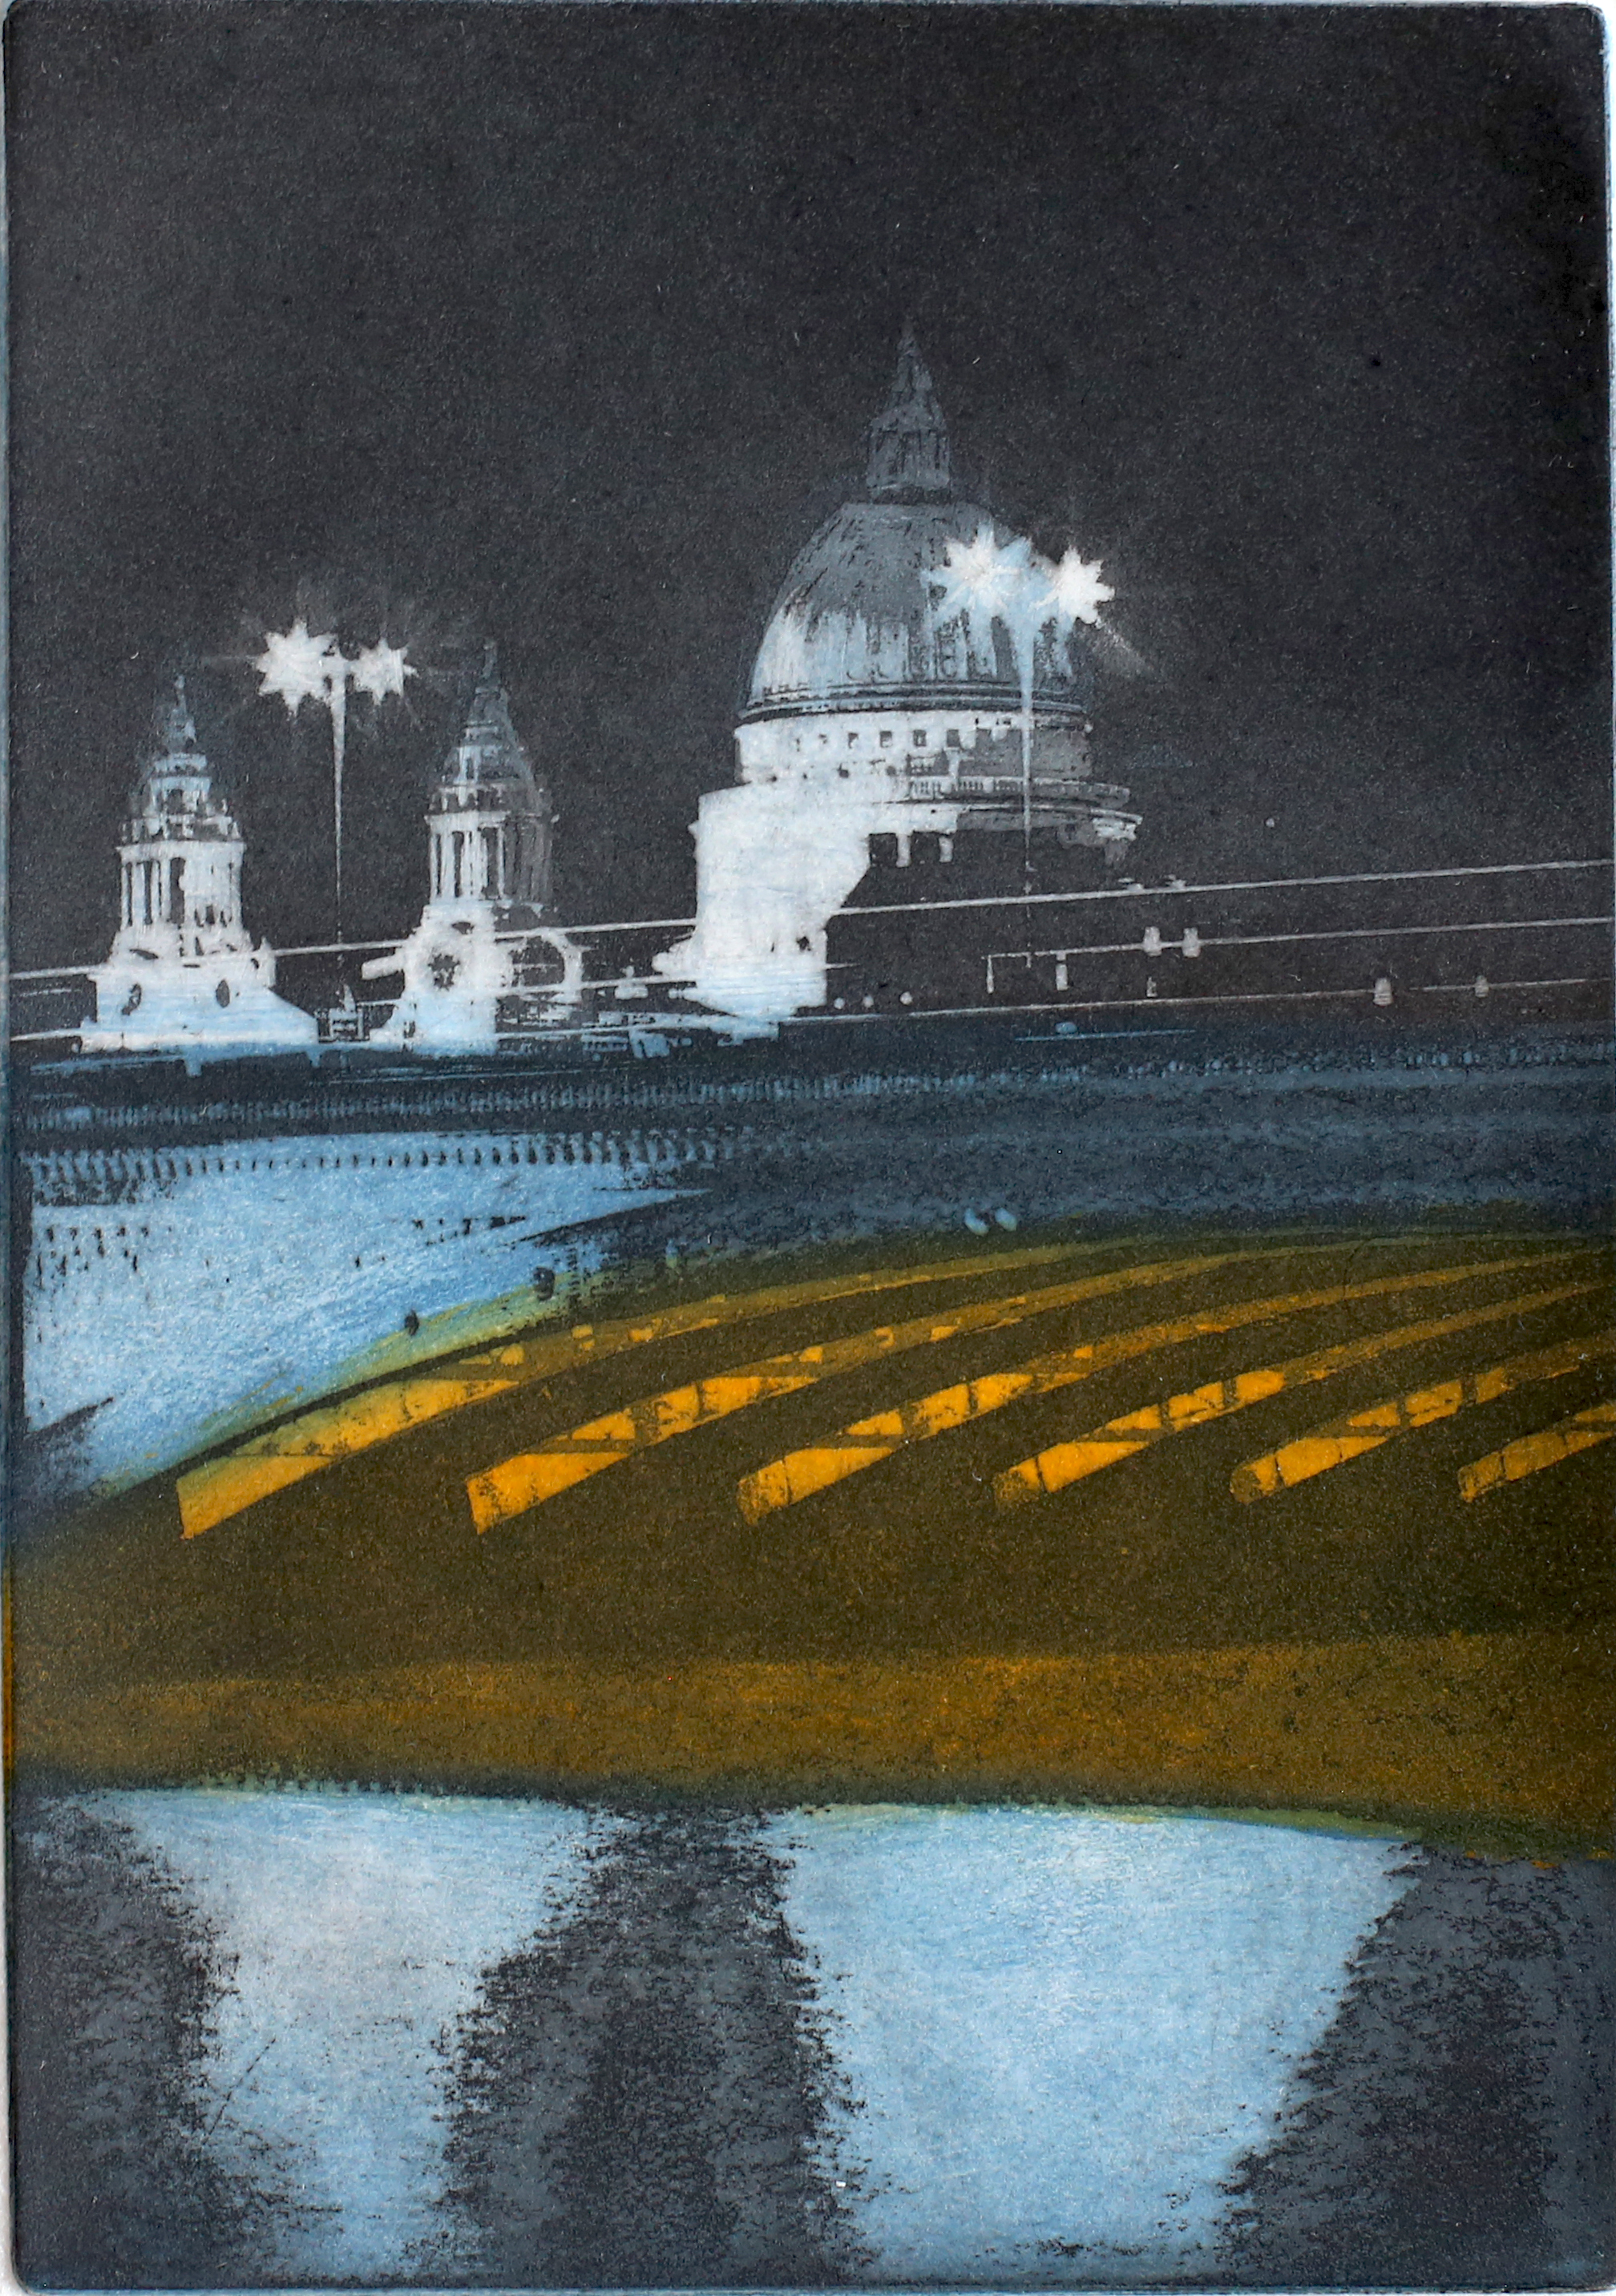 Night Time by the Thames, blue